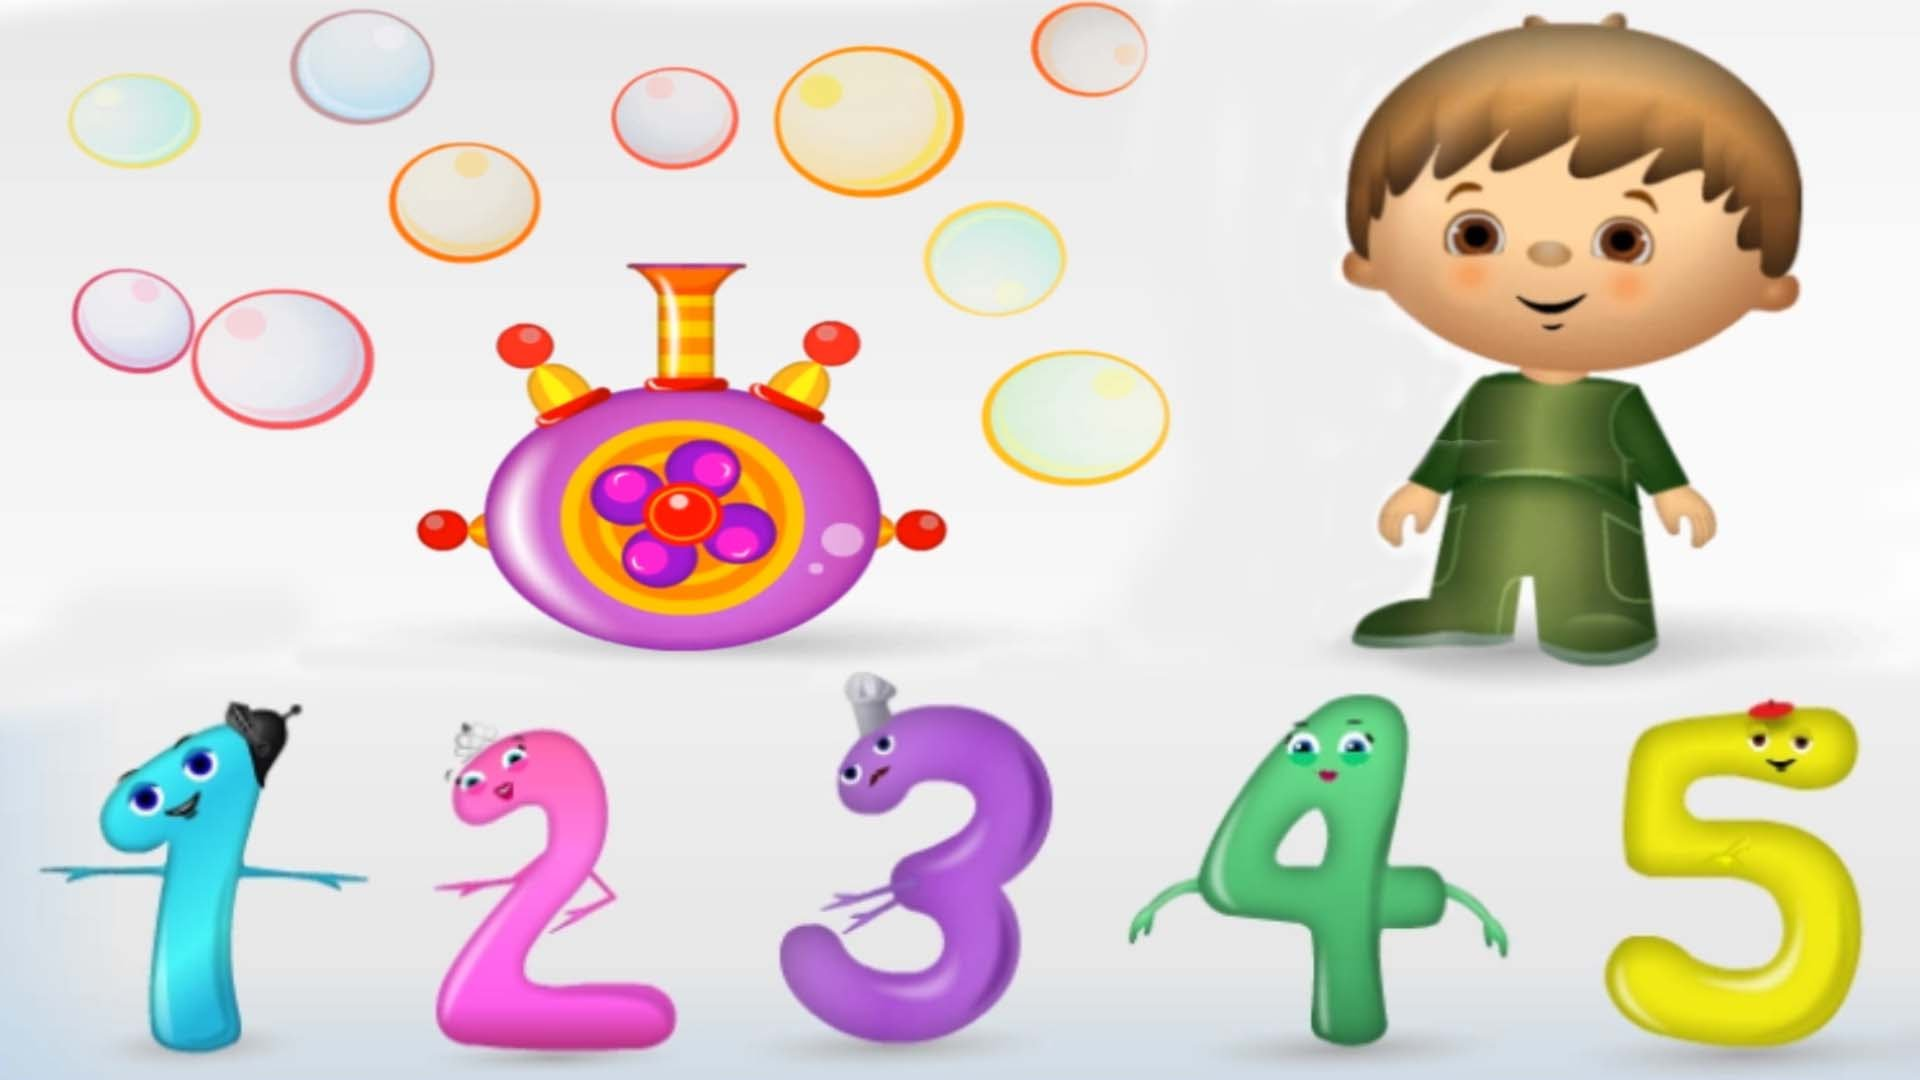 Video Game clipart children activity 1 Fun Kids Numbers for